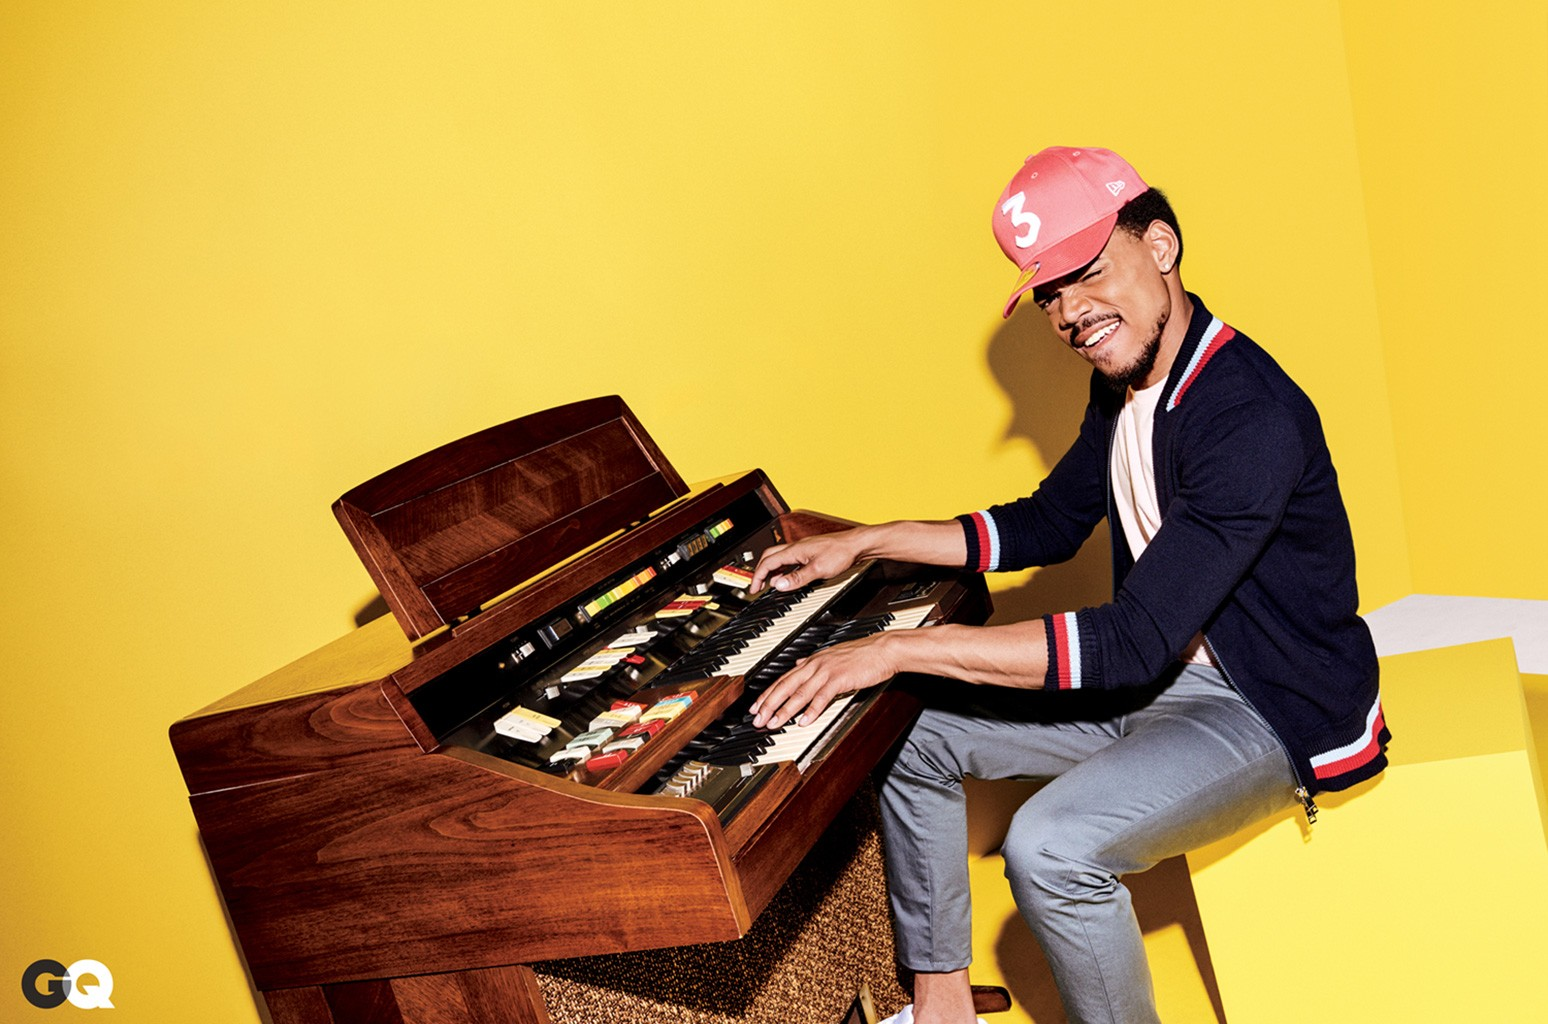 Chance The Rapper photographed for the February 2017 issue of GQ.